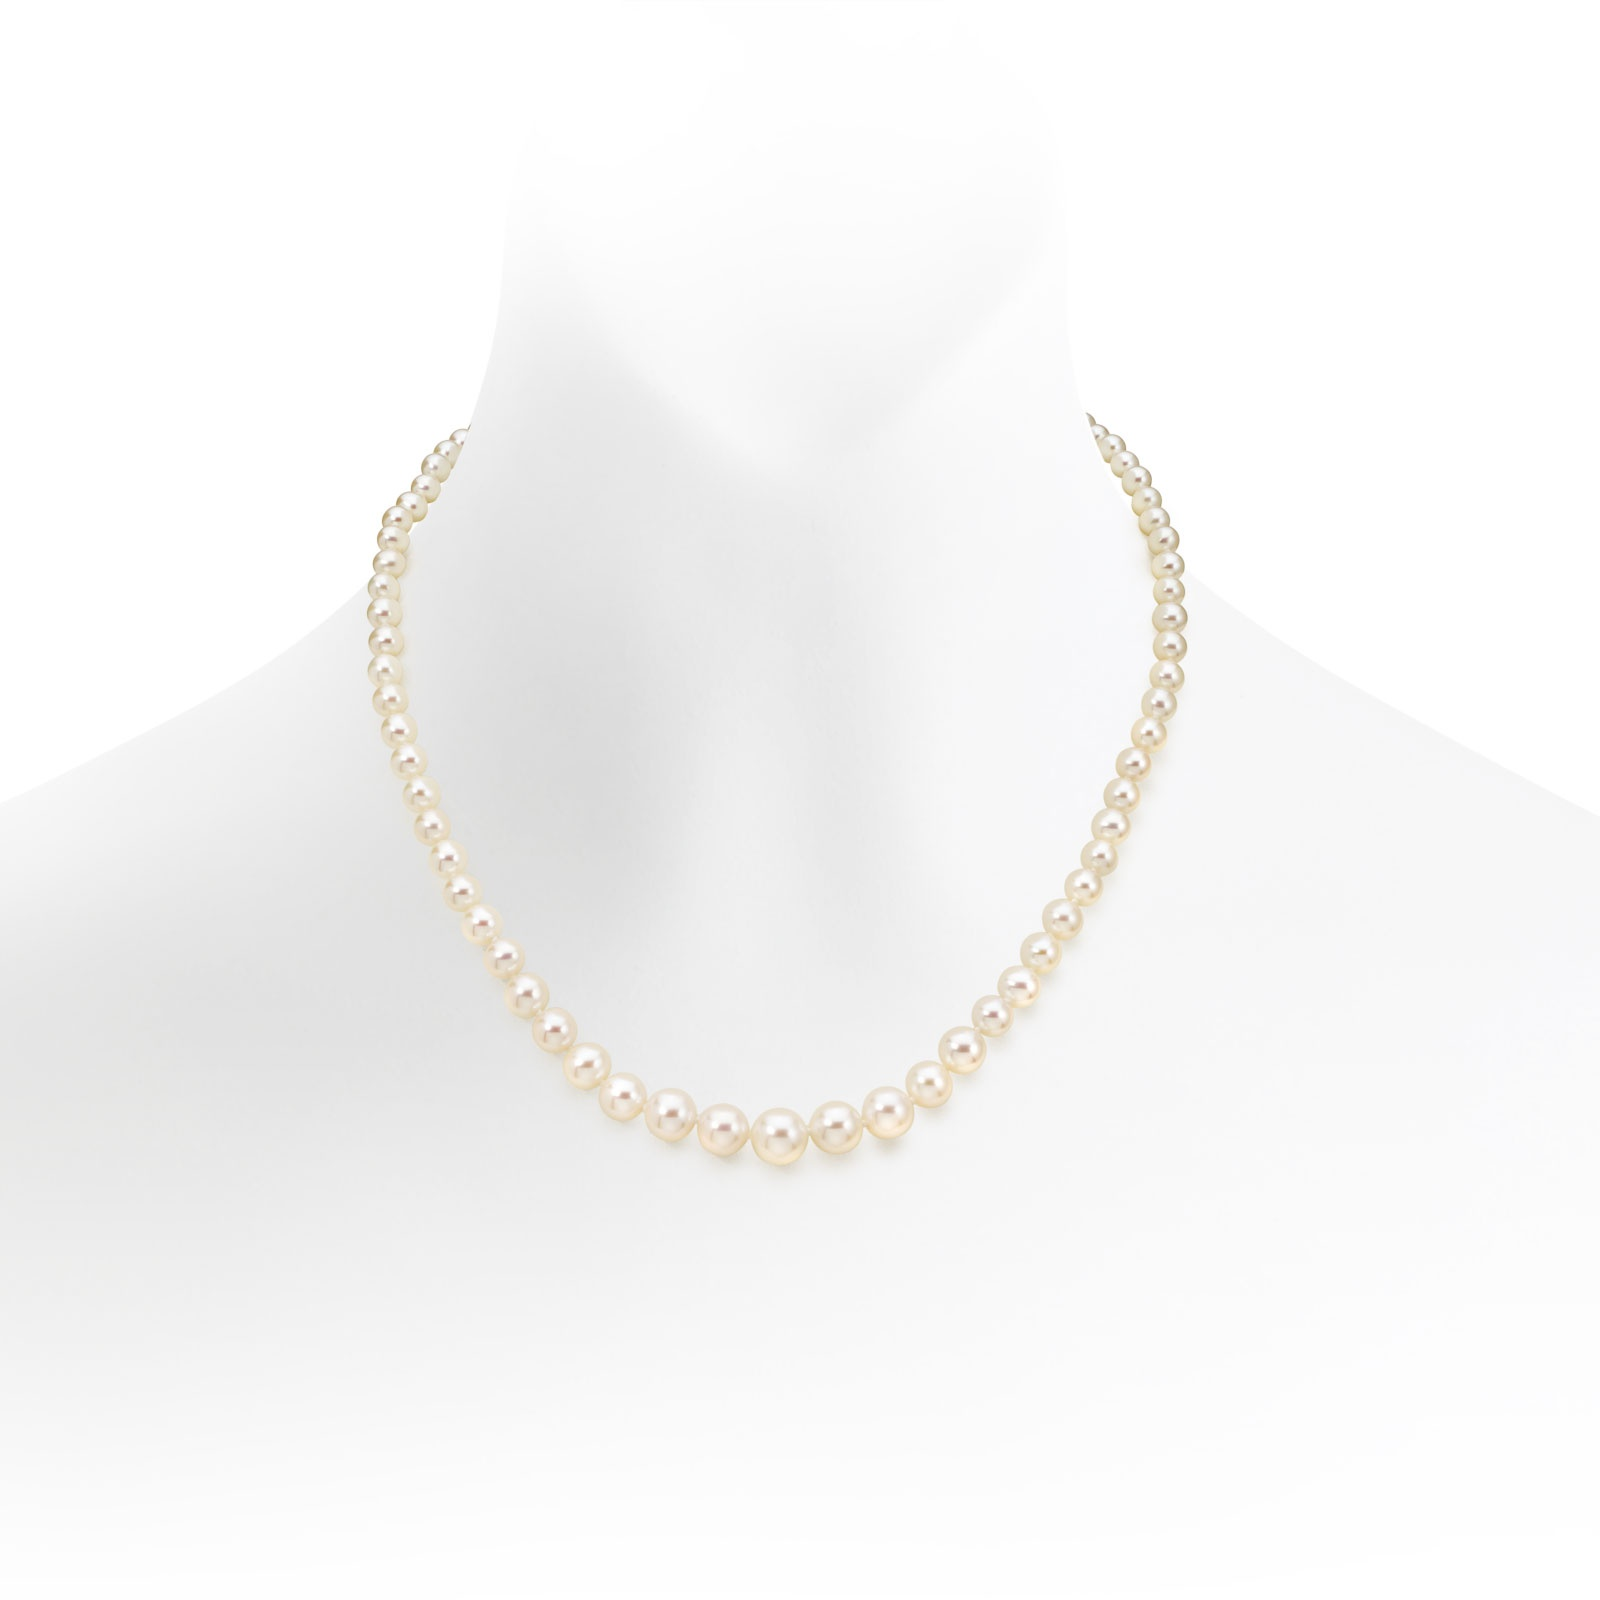 Graduated White Freshwater Pearl Necklace with 18ct Gold Clasp-FNVAR02600261-1